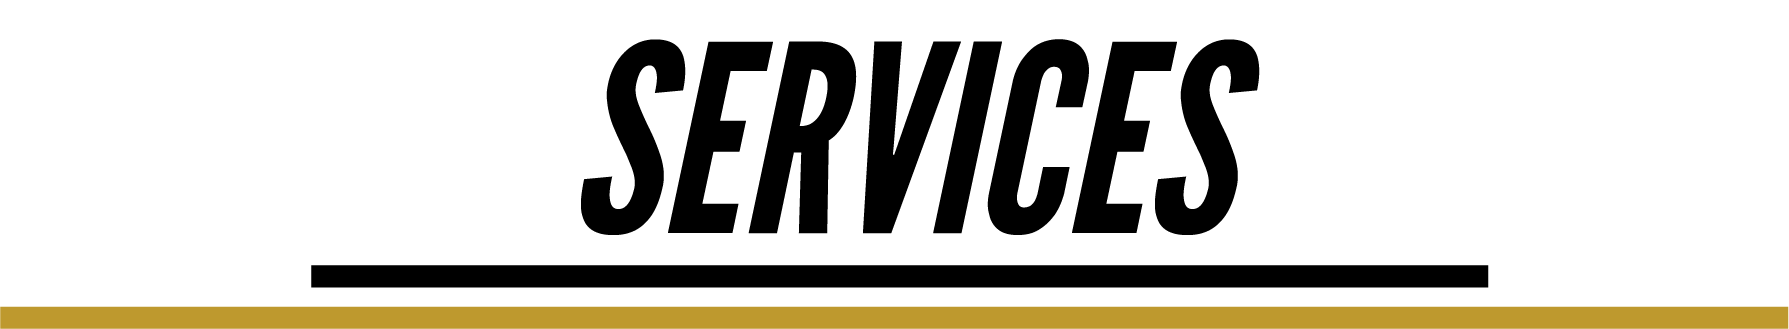 services title.png